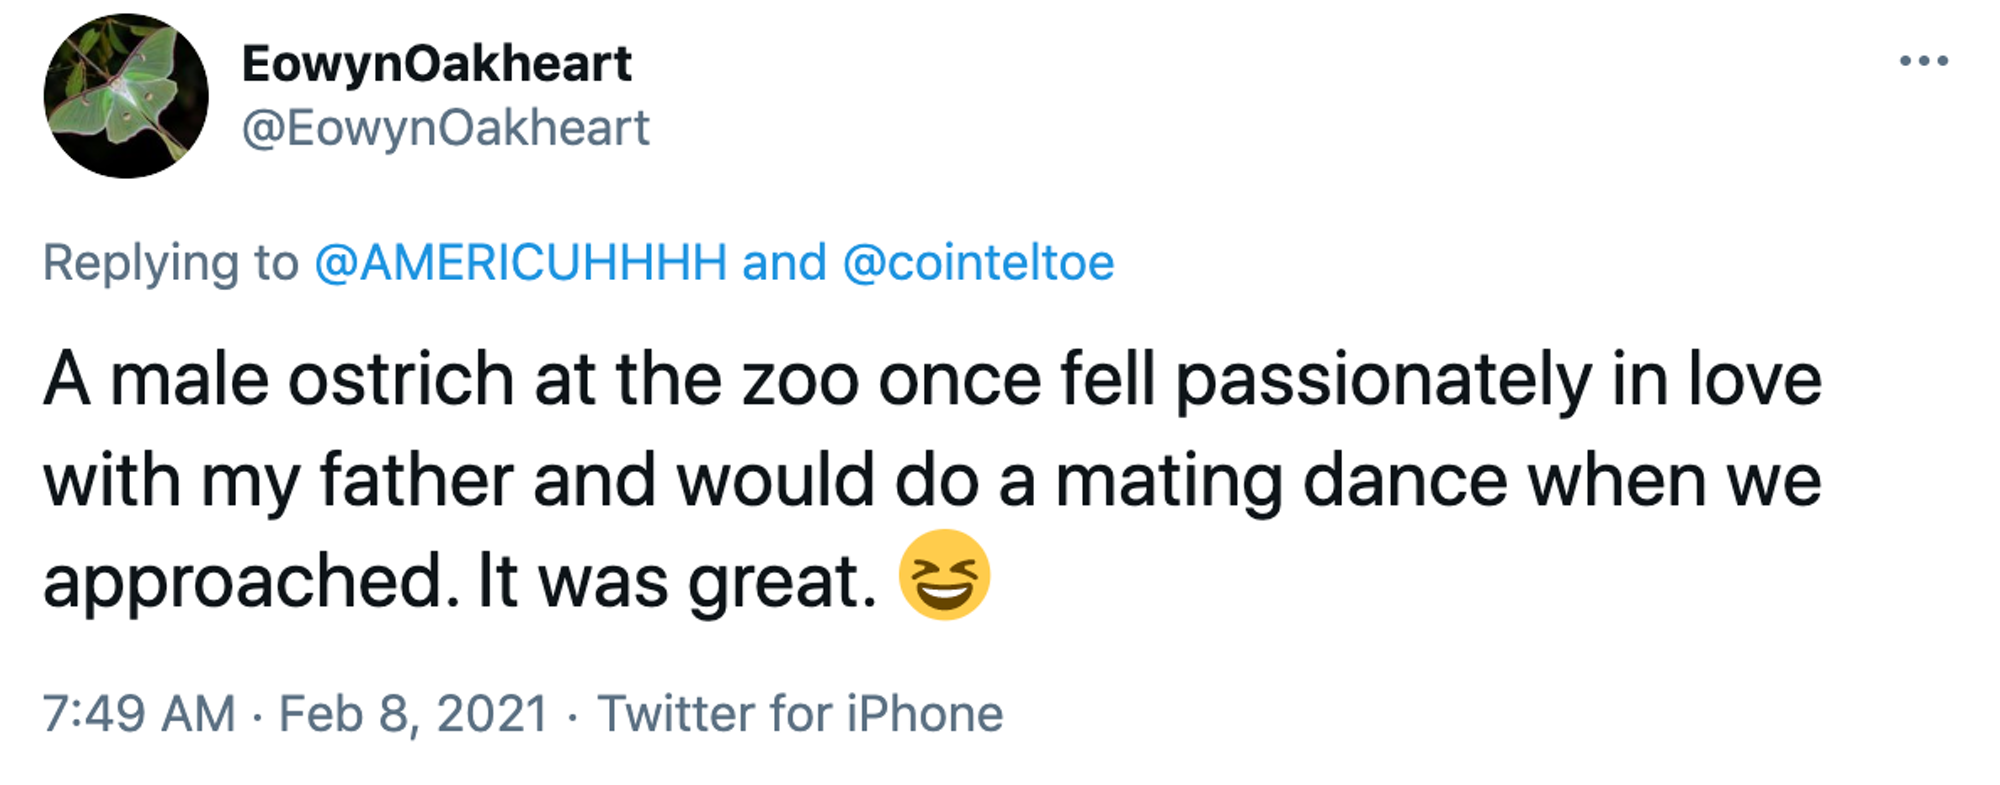 A male ostrich at the zoo once fell passionately in love with my father and would do a mating dance when we approached. It was great. Smiling face with open mouth and tightly-closed eyes